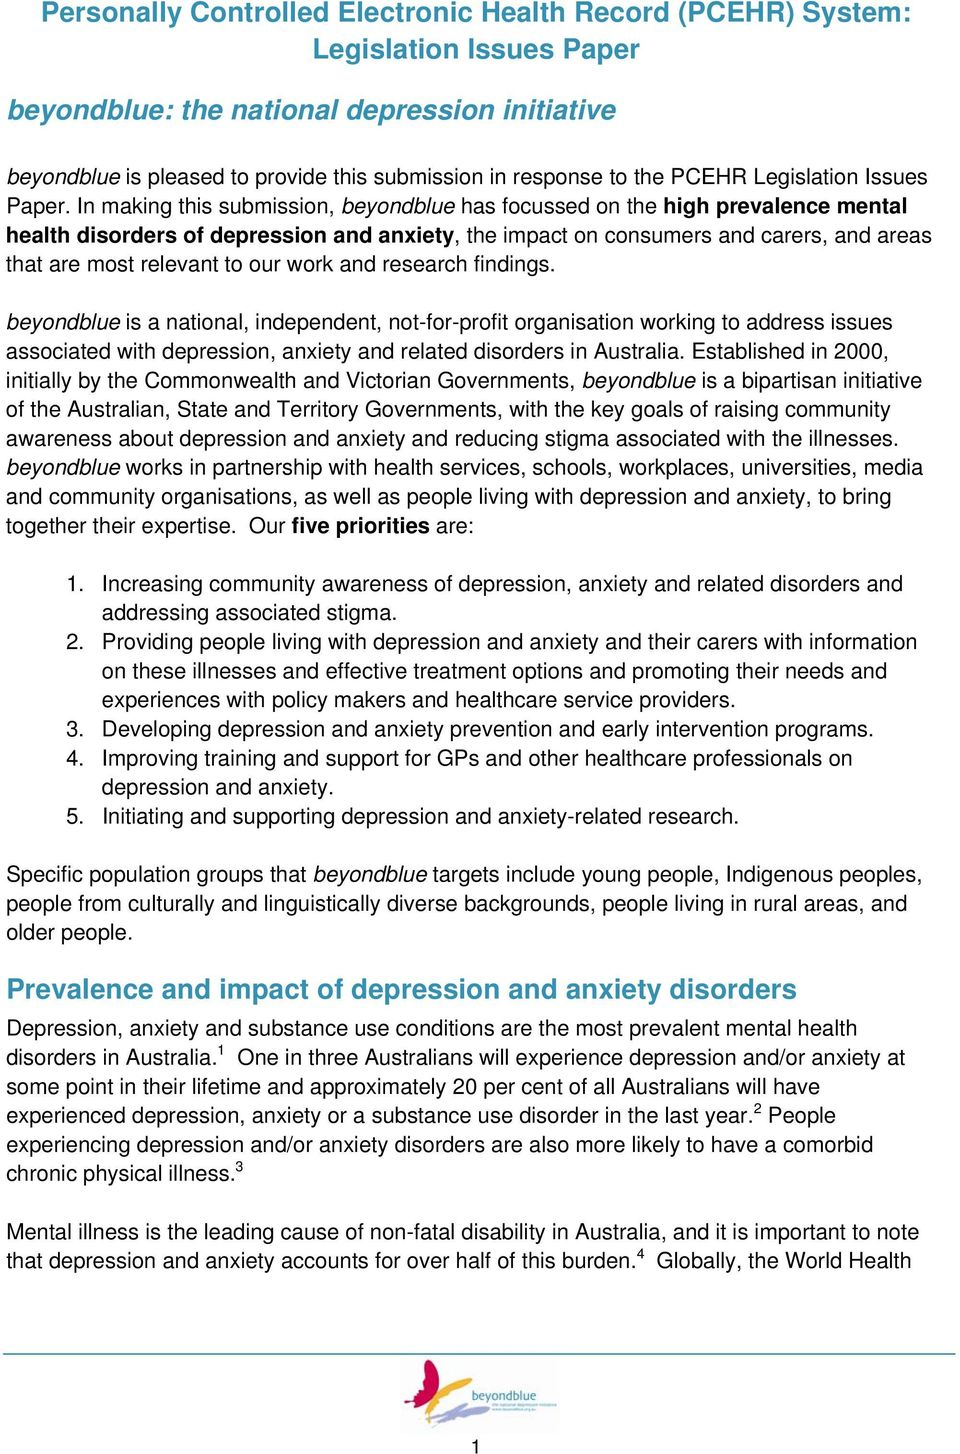 In making this submission, beyondblue has focussed on the high prevalence mental health disorders of depression and anxiety, the impact on consumers and carers, and areas that are most relevant to